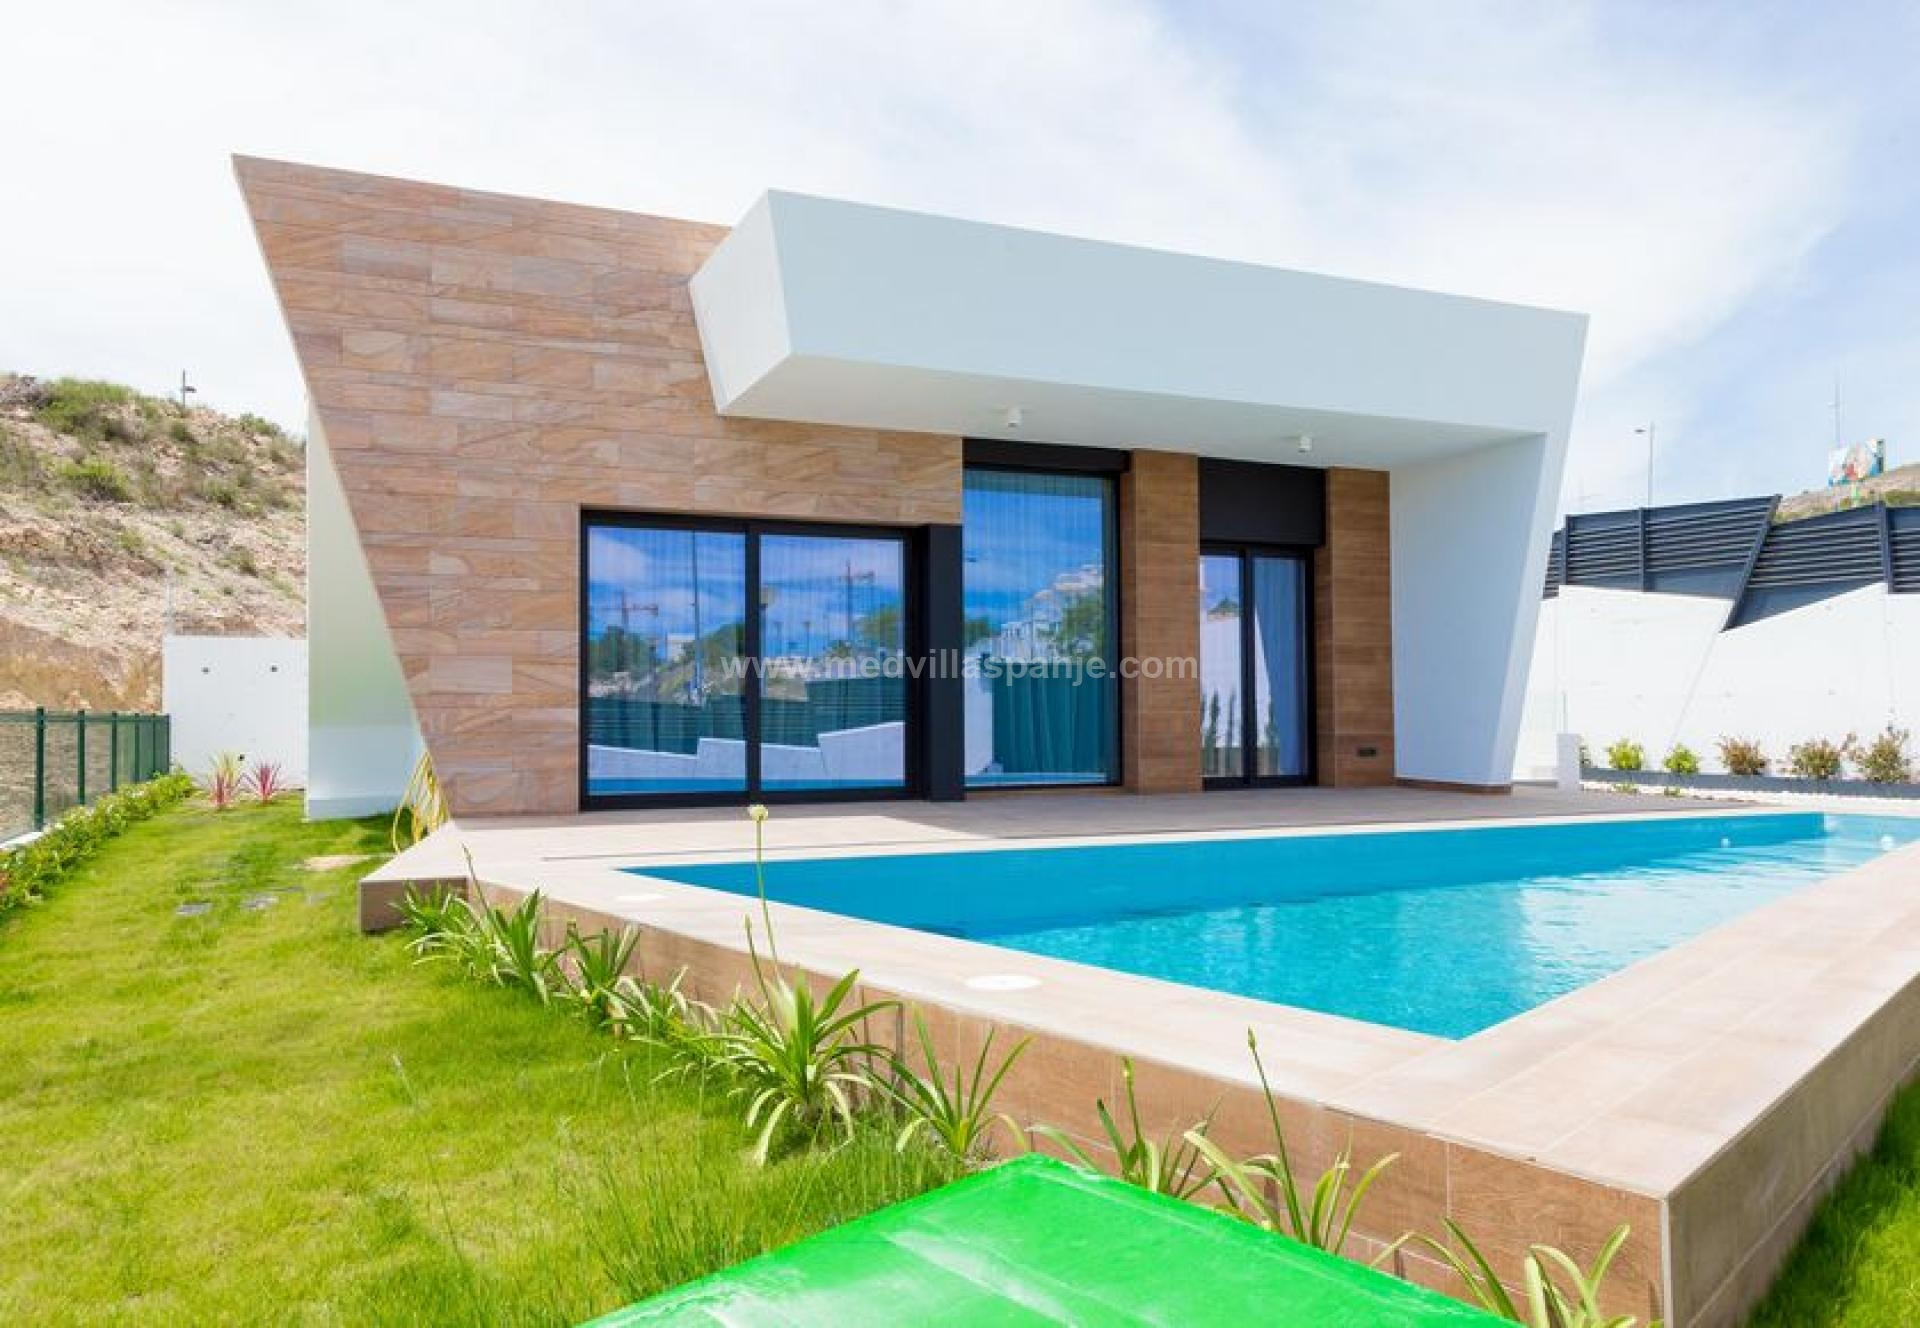 3 bedroom Villa in Finestrat - New build in Medvilla Spanje